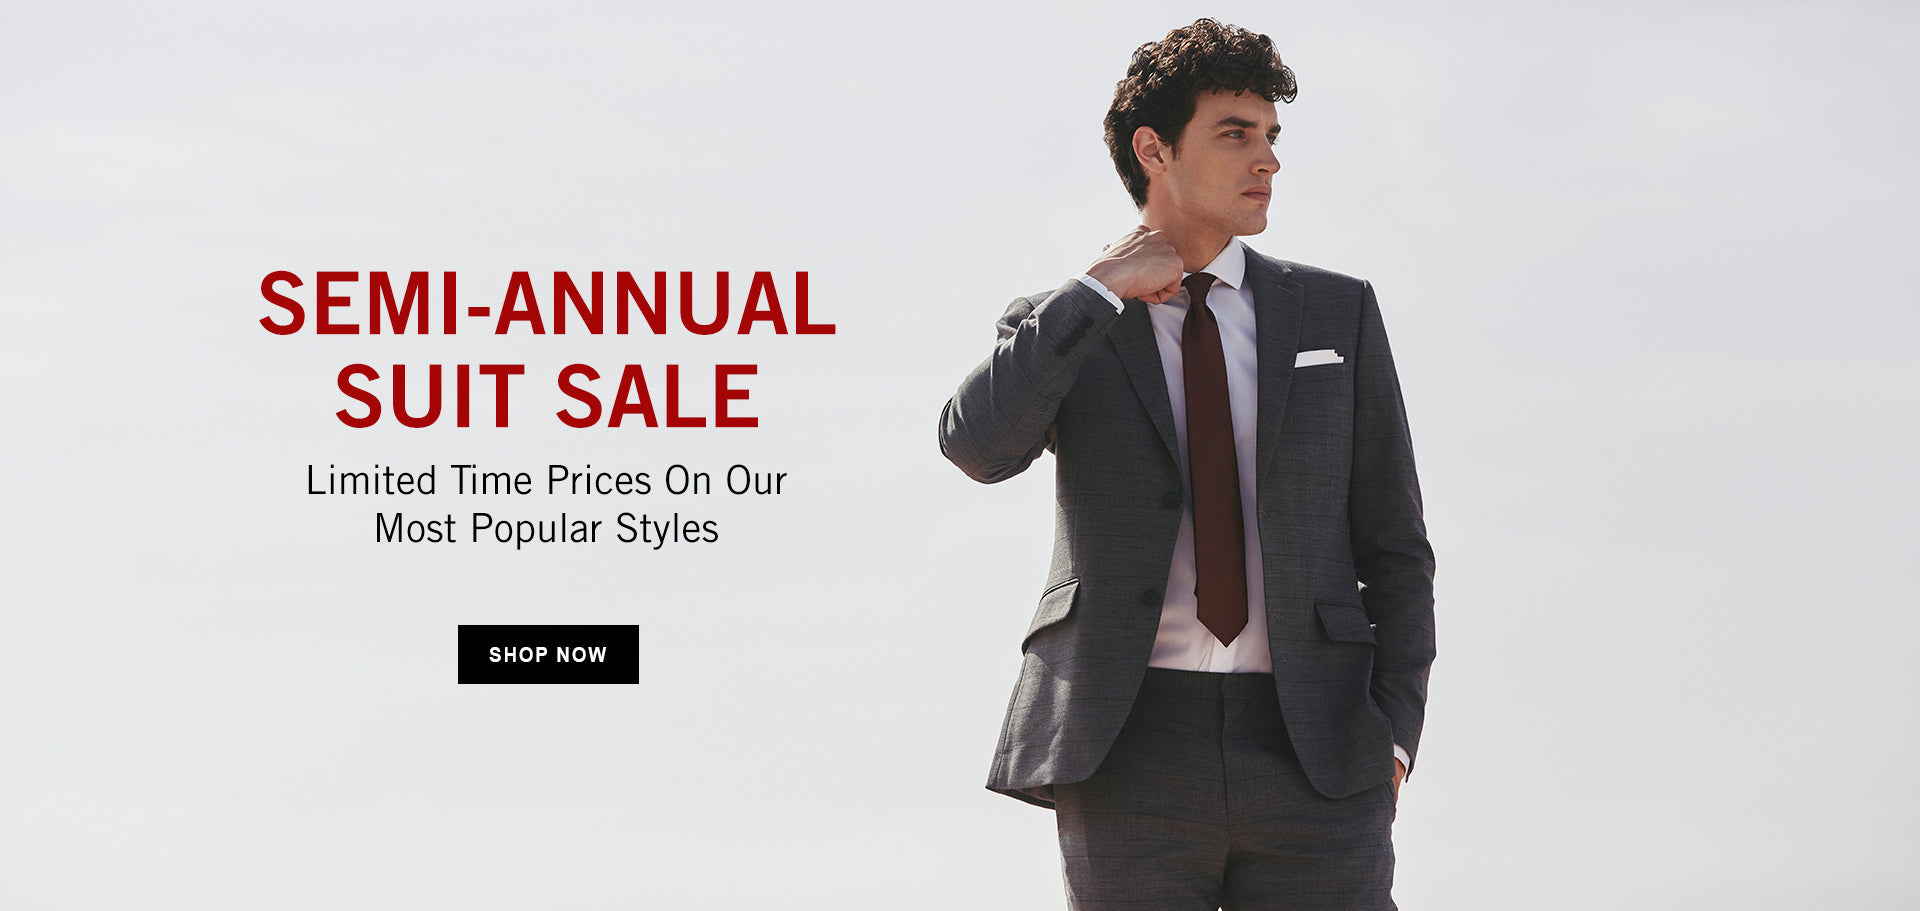 SEMI-ANNUAL SUIT SALE - SHOP NOW